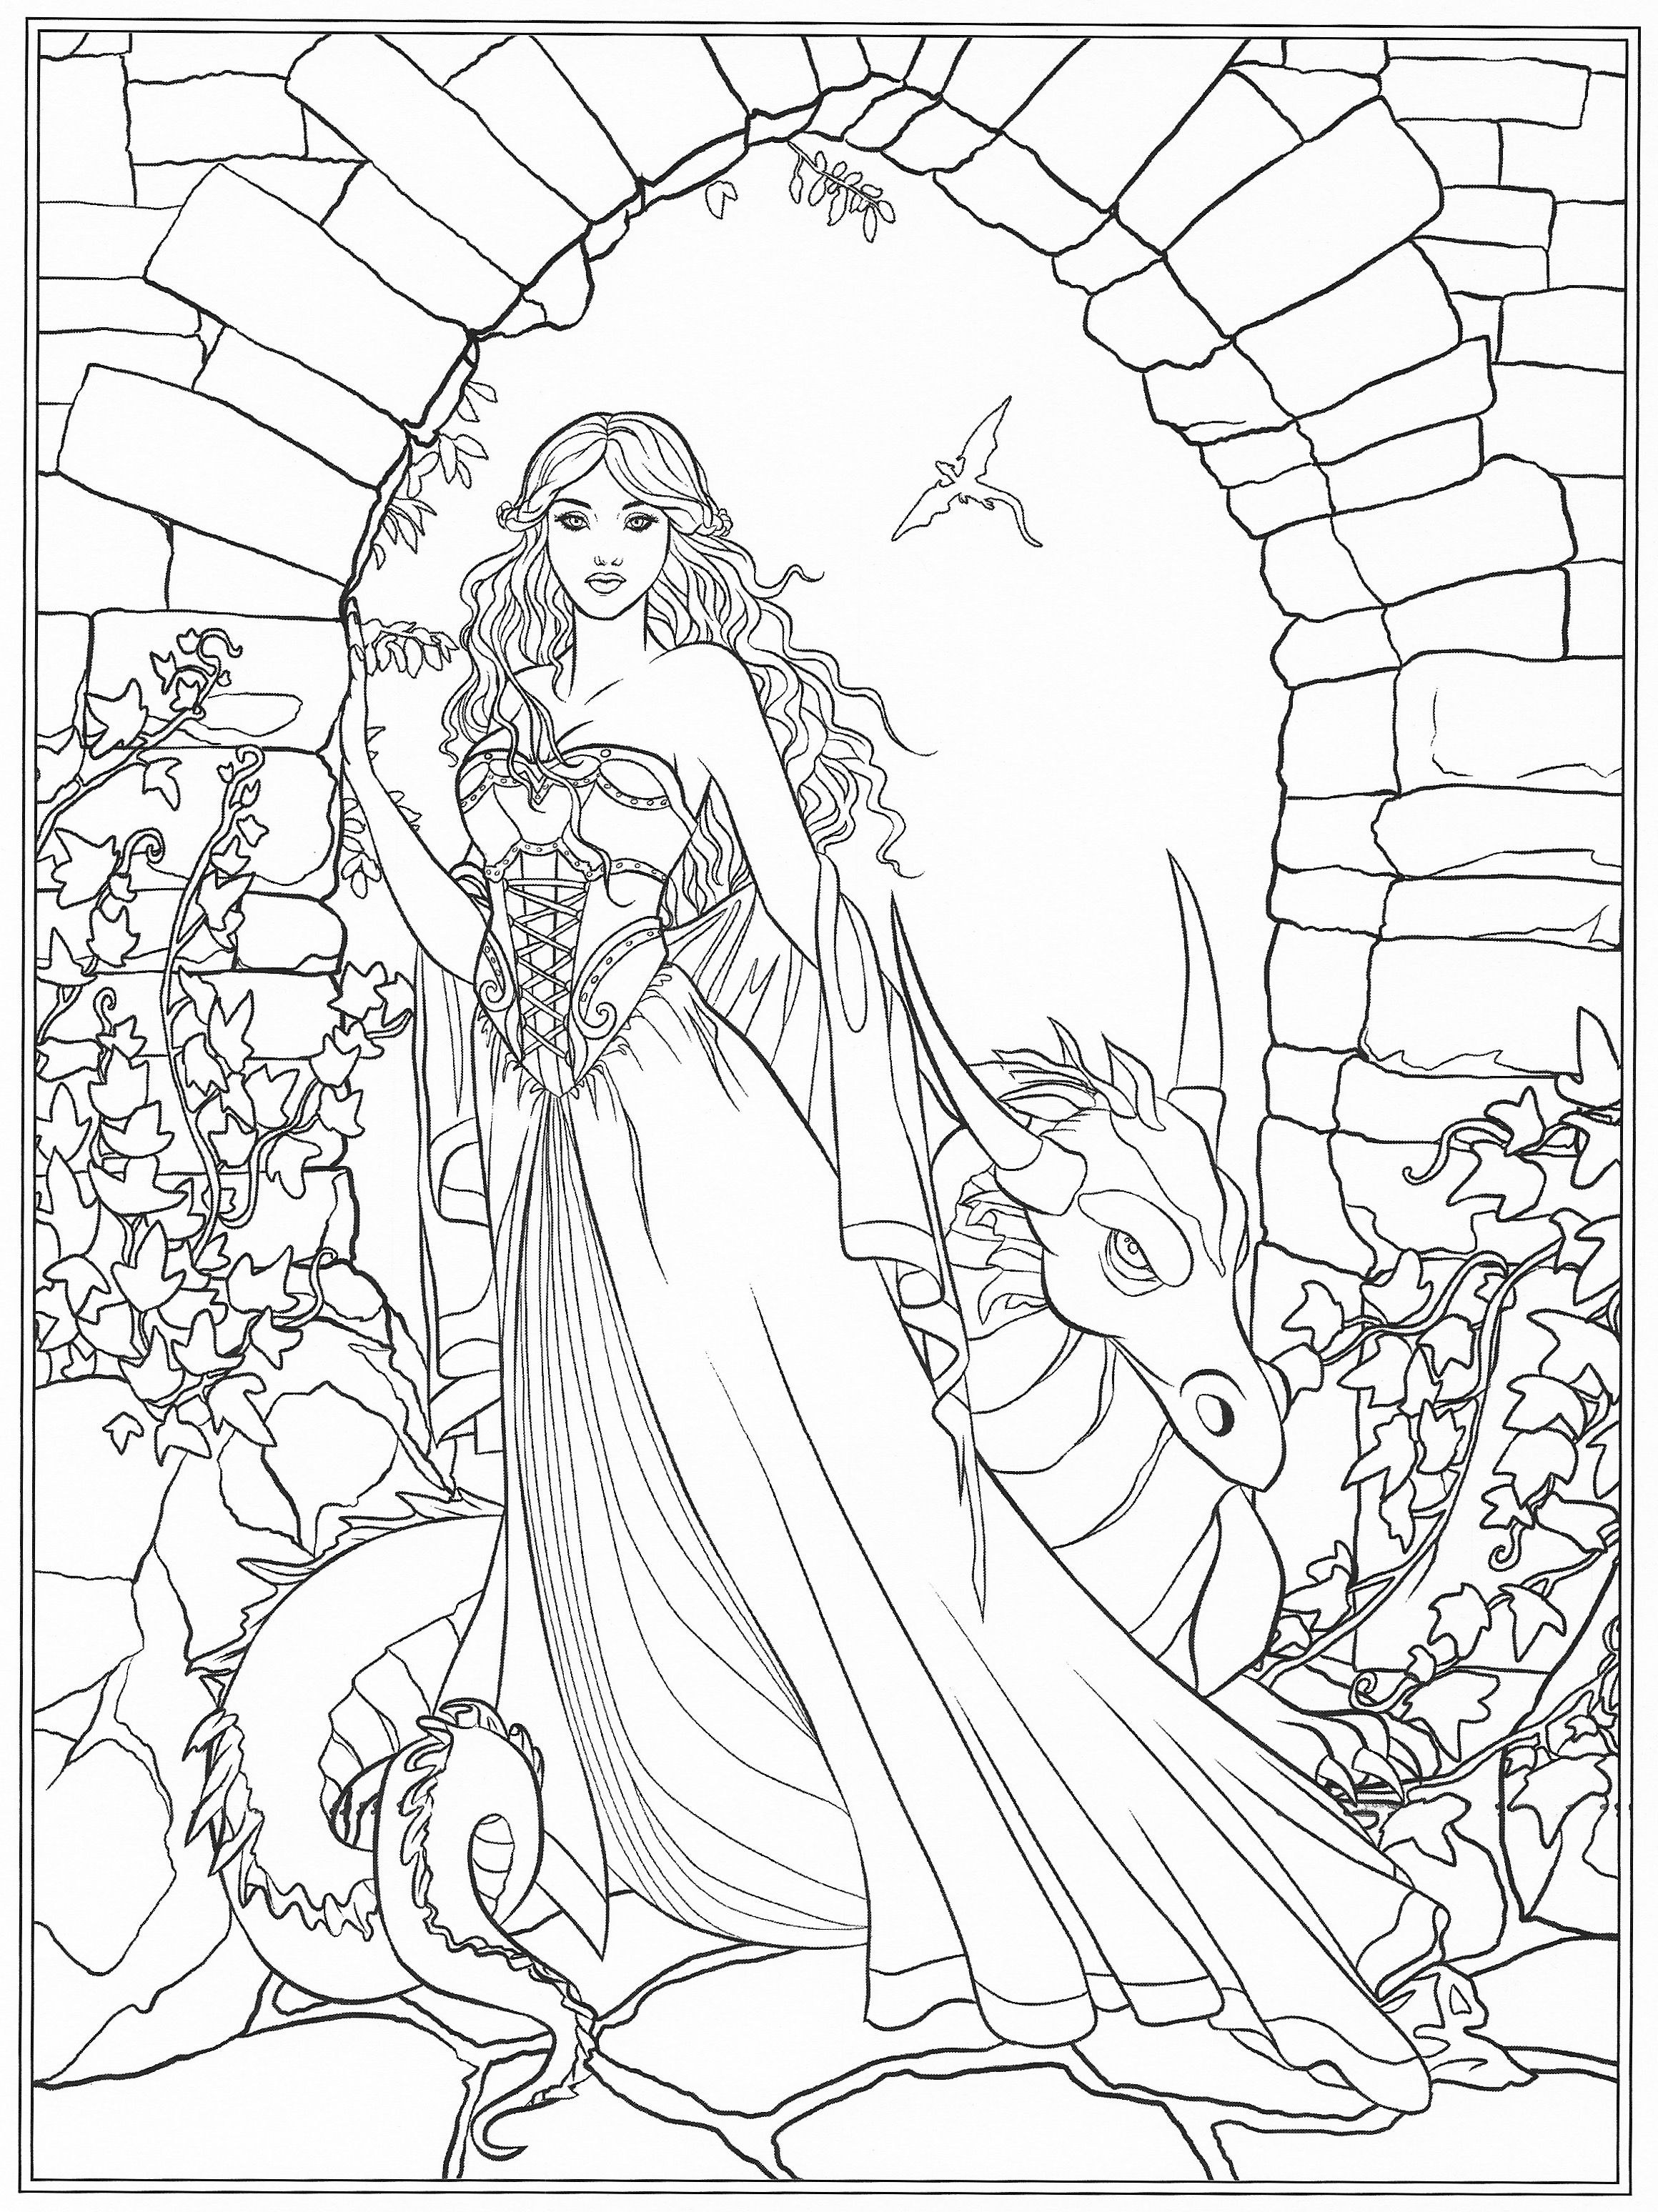 Gothic - Dark Fantasy Coloring Book (Fantasy Art Coloring by Selina ...